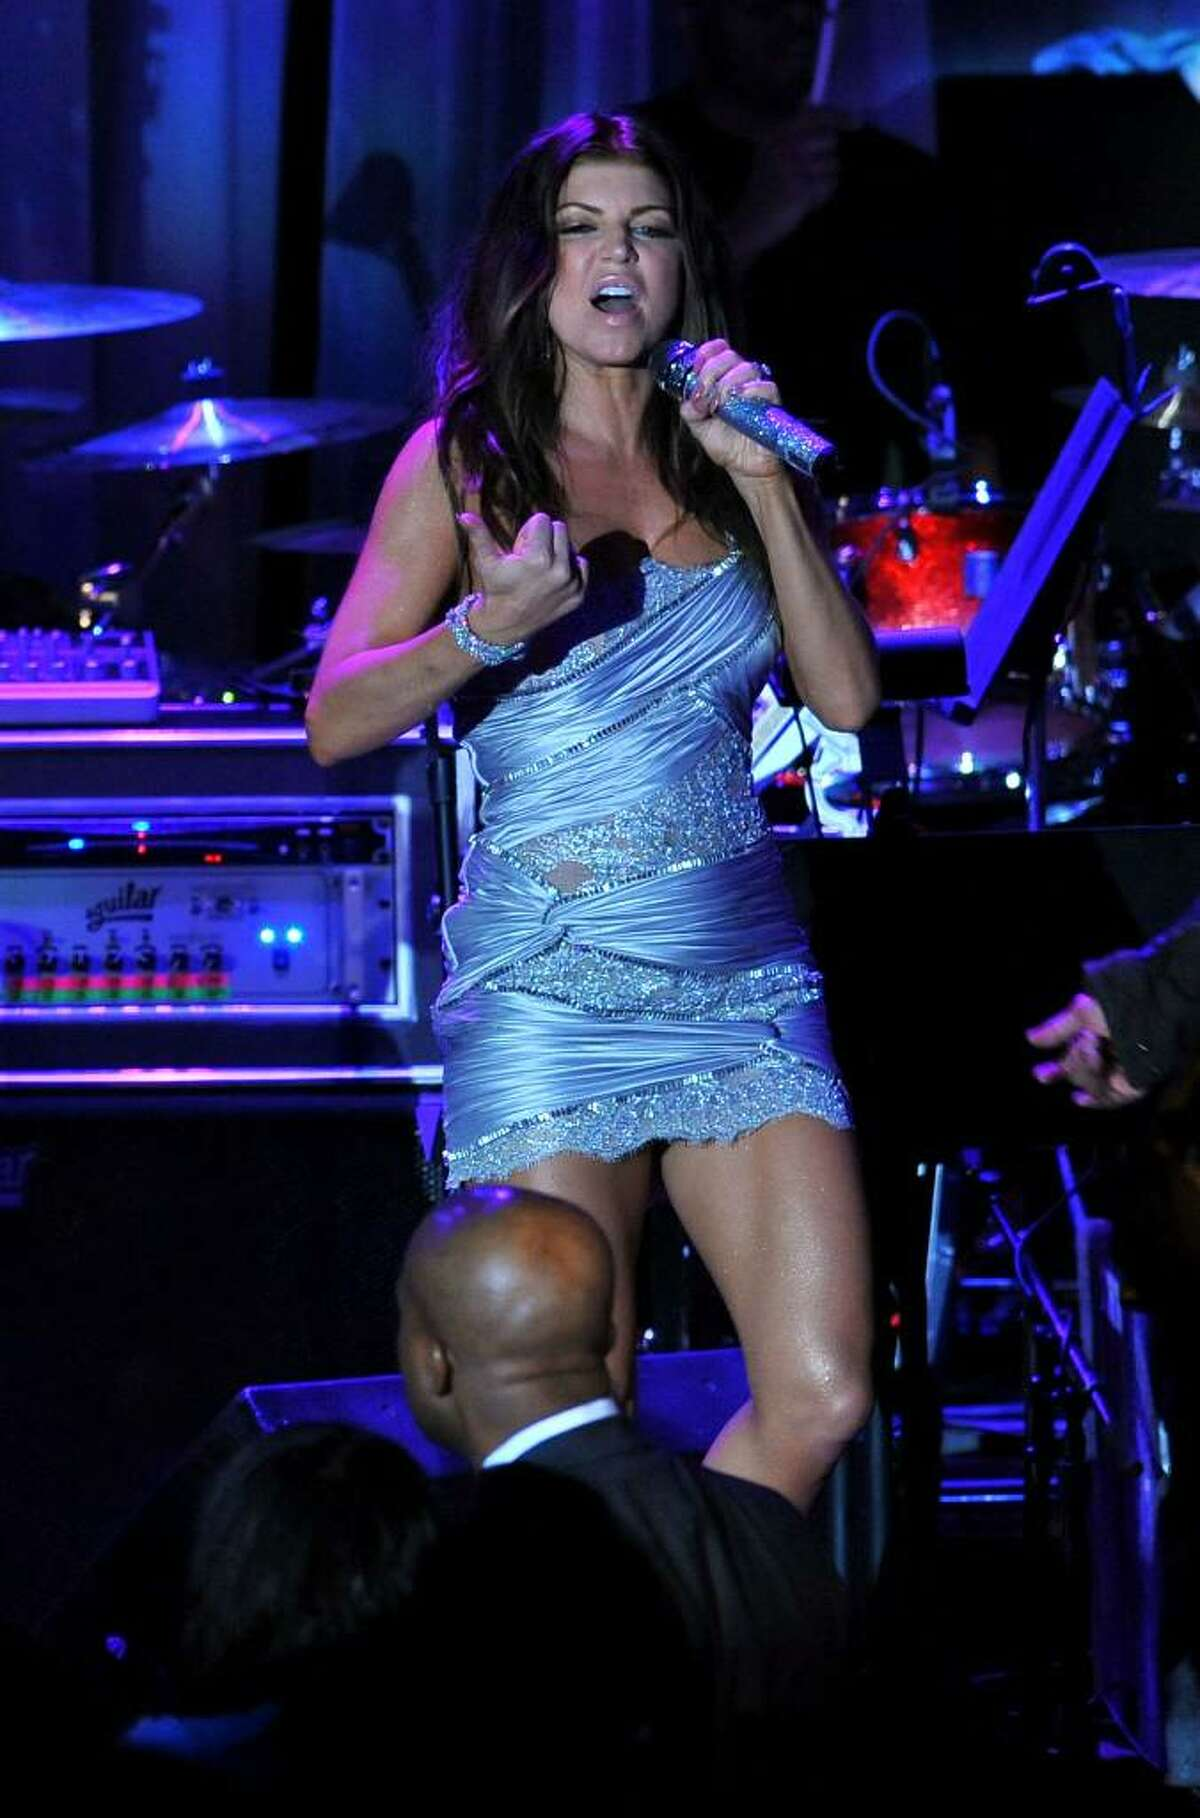 Singer Stacy Ferguson, Fergie, performs onstage at the annual Pre-GRAMMY Gala presented by The Recording Academy and Clive Davis on Saturday, Jan. 30, 2010 at The Beverly Hilton Hotel in Beverly, Hills, California. (AP Photo/Vince Bucci)